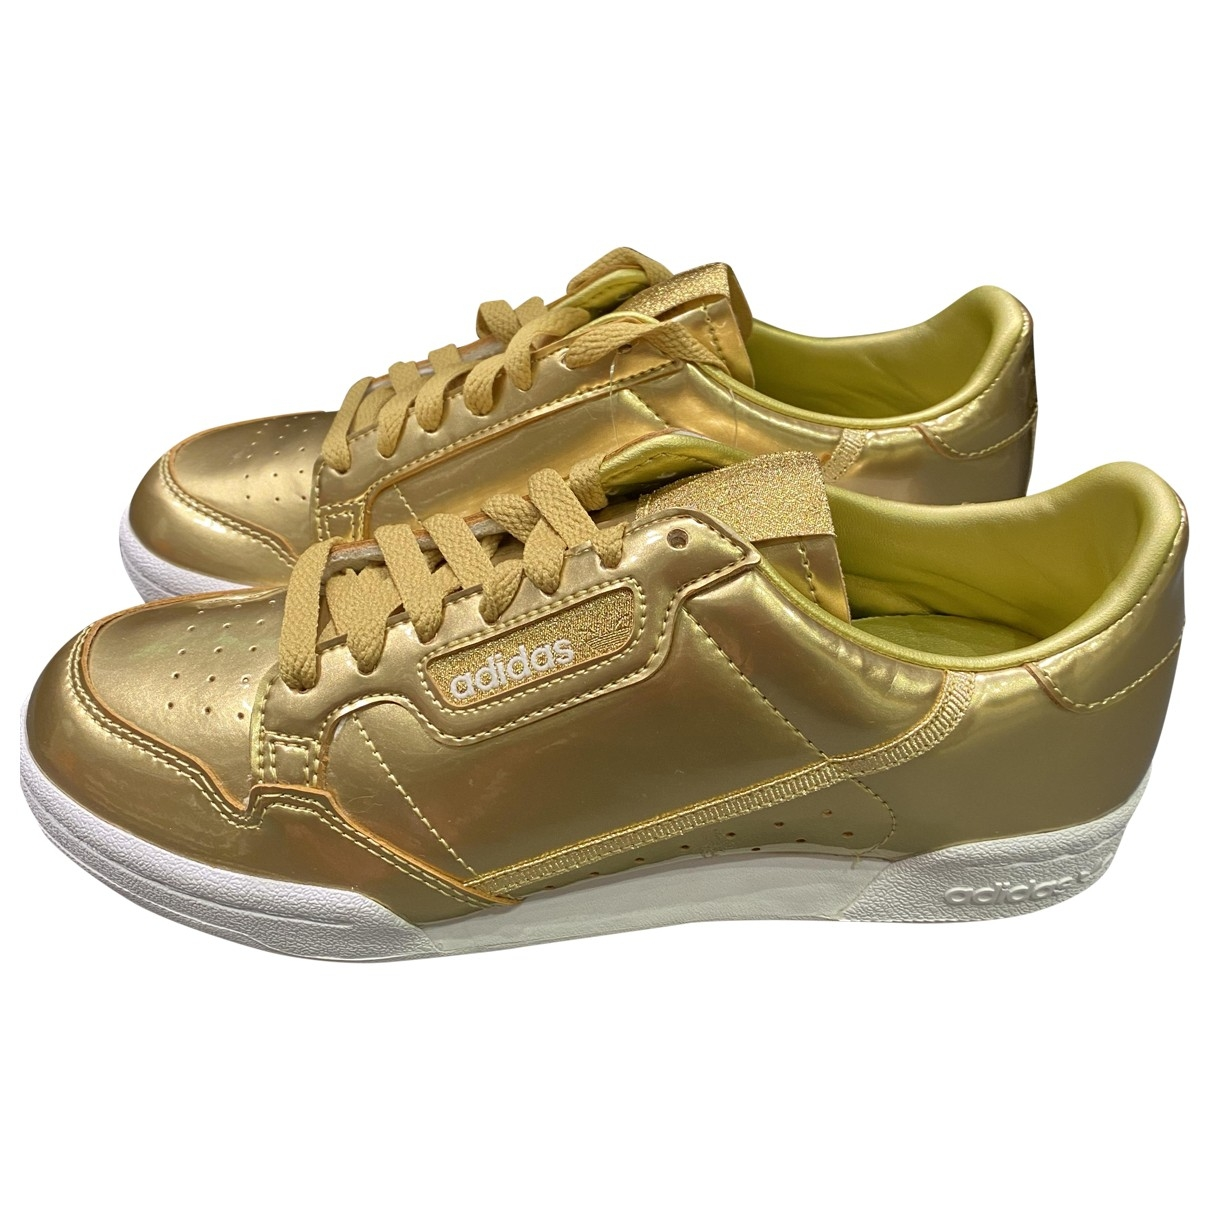 Adidas Continental 80 Gold Leather Trainers for Women 38.5 EU